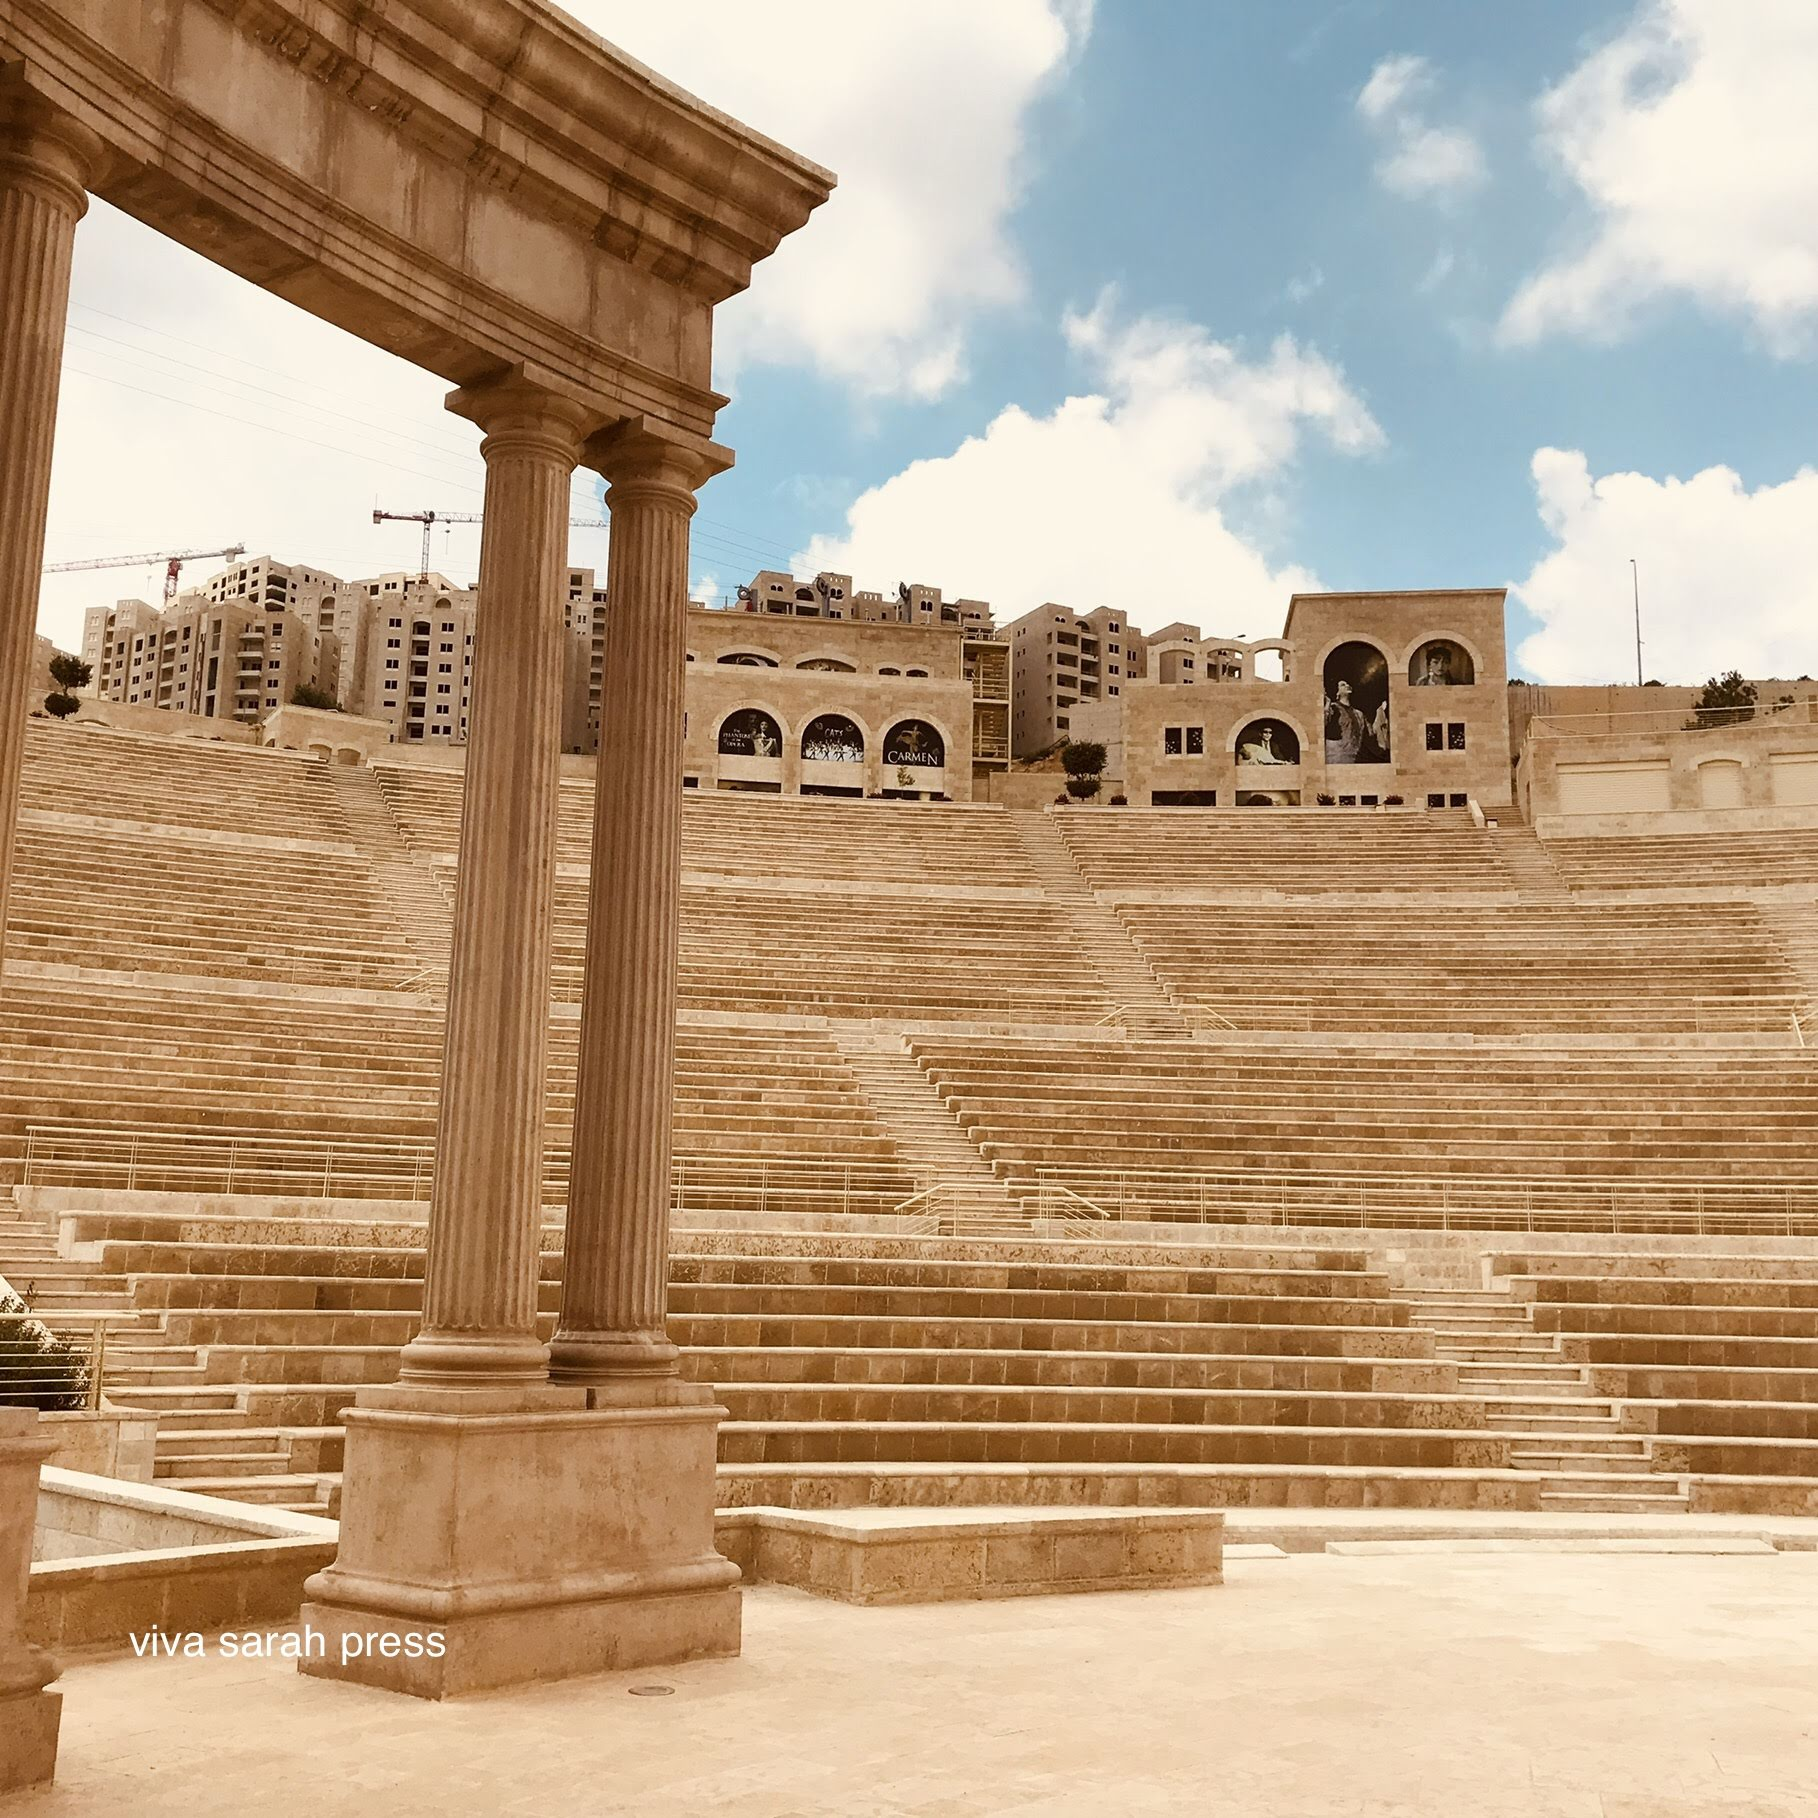 Amphitheater in Rawabi